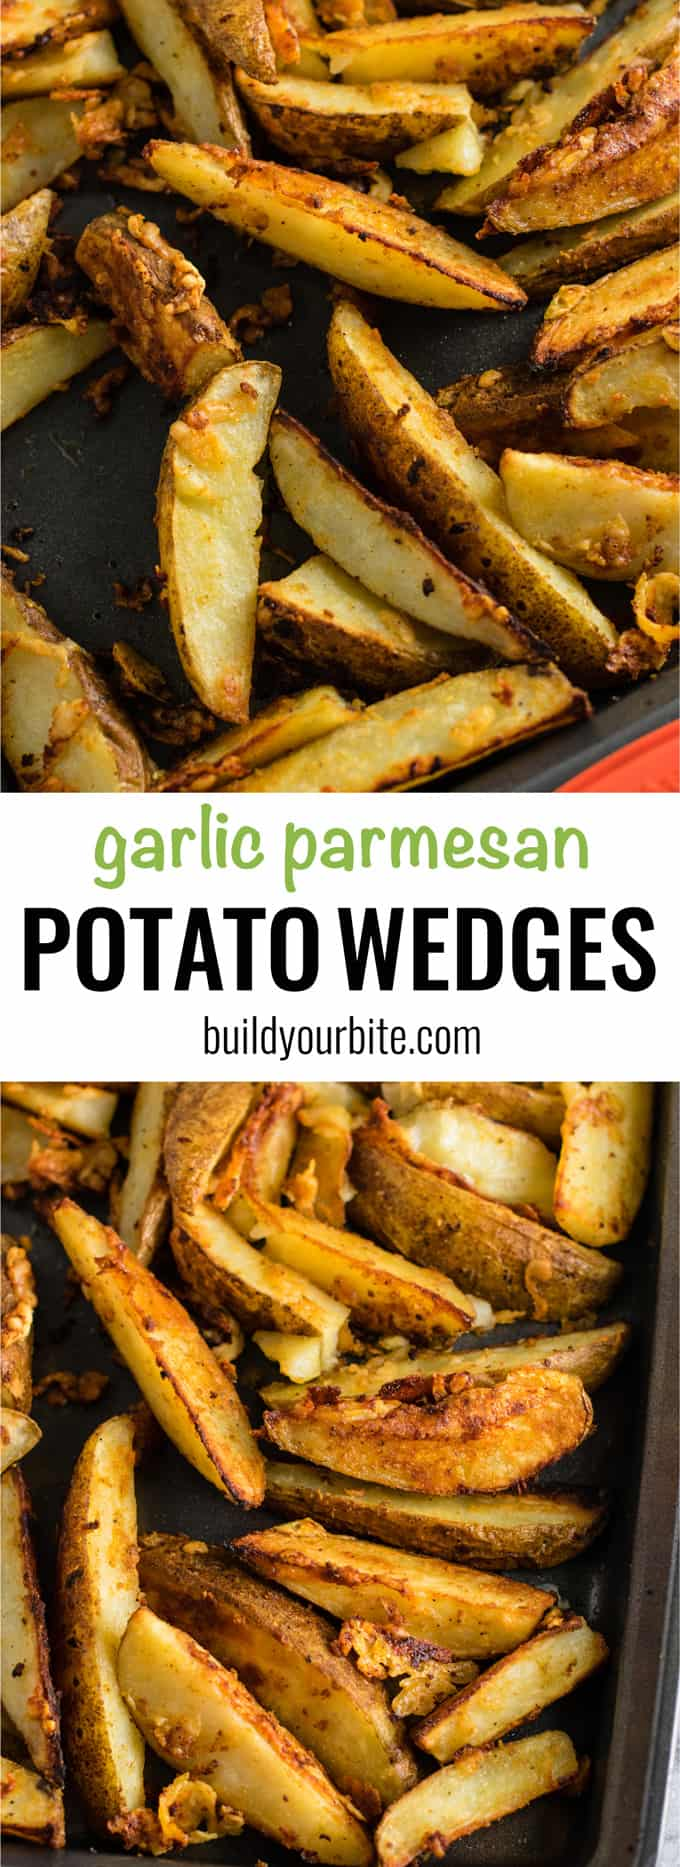 Baked garlic parmesan potato wedges - freshly grated parmesan gives these those amazing crispy edges. Perfect easy side dish! #garlicparmesan #potatowedges #sidedish #vegetarian #parmesan #dinner